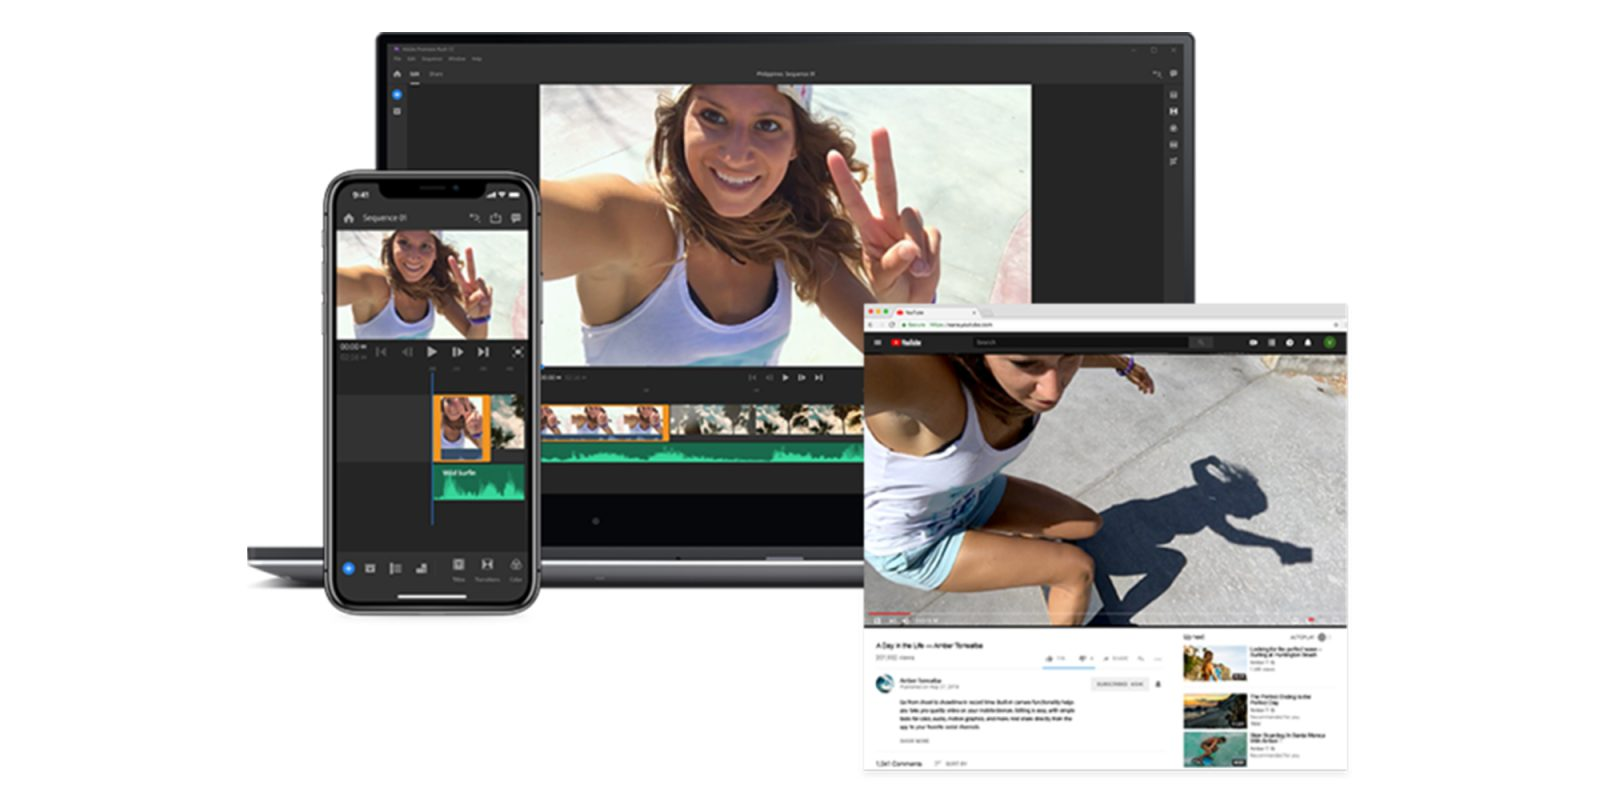 Adobe Premiere Rush now available on Android w/ free trial - 9to5Google